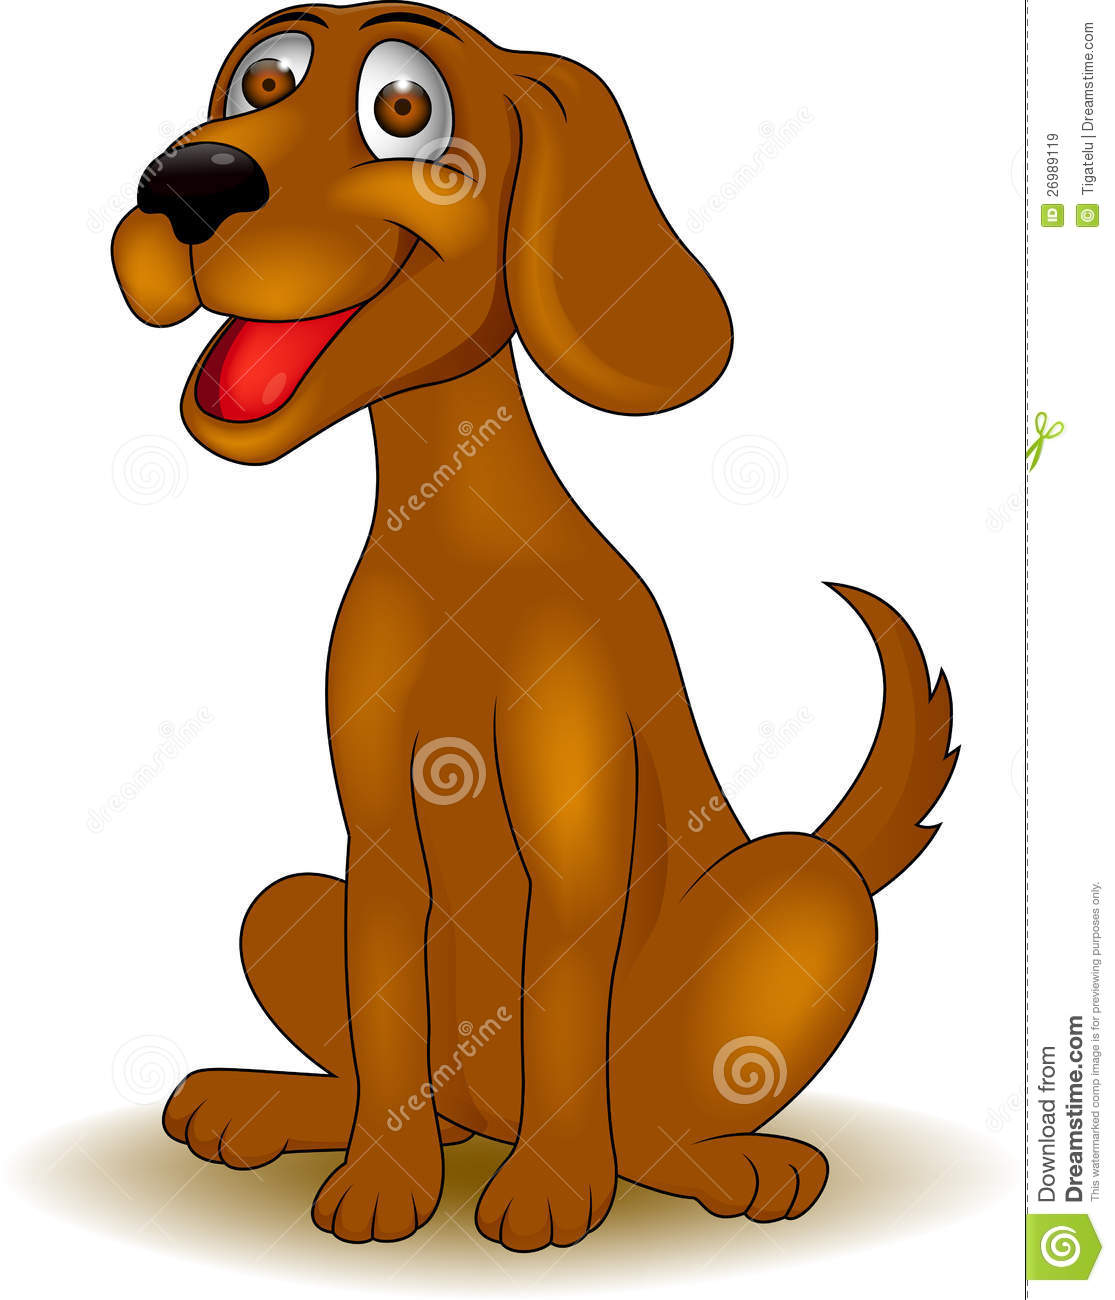 Funny Dog Cartoon Royalty Free Stock Images - Image: 26989119